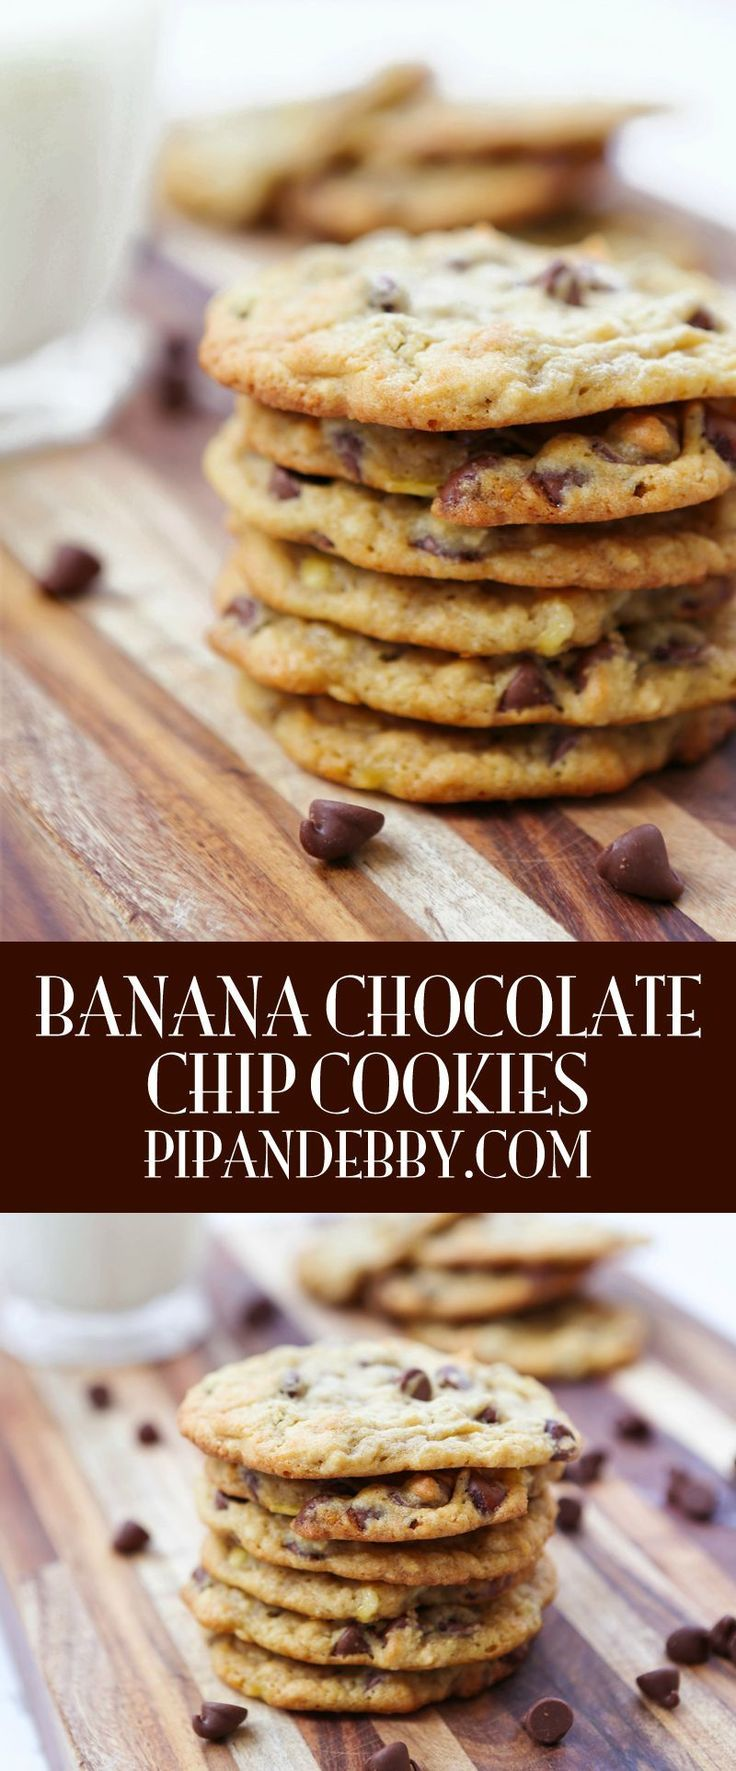 Banana Chocolate Chip Cookies - this is such a great way to use up ripe bananas! So delicious!